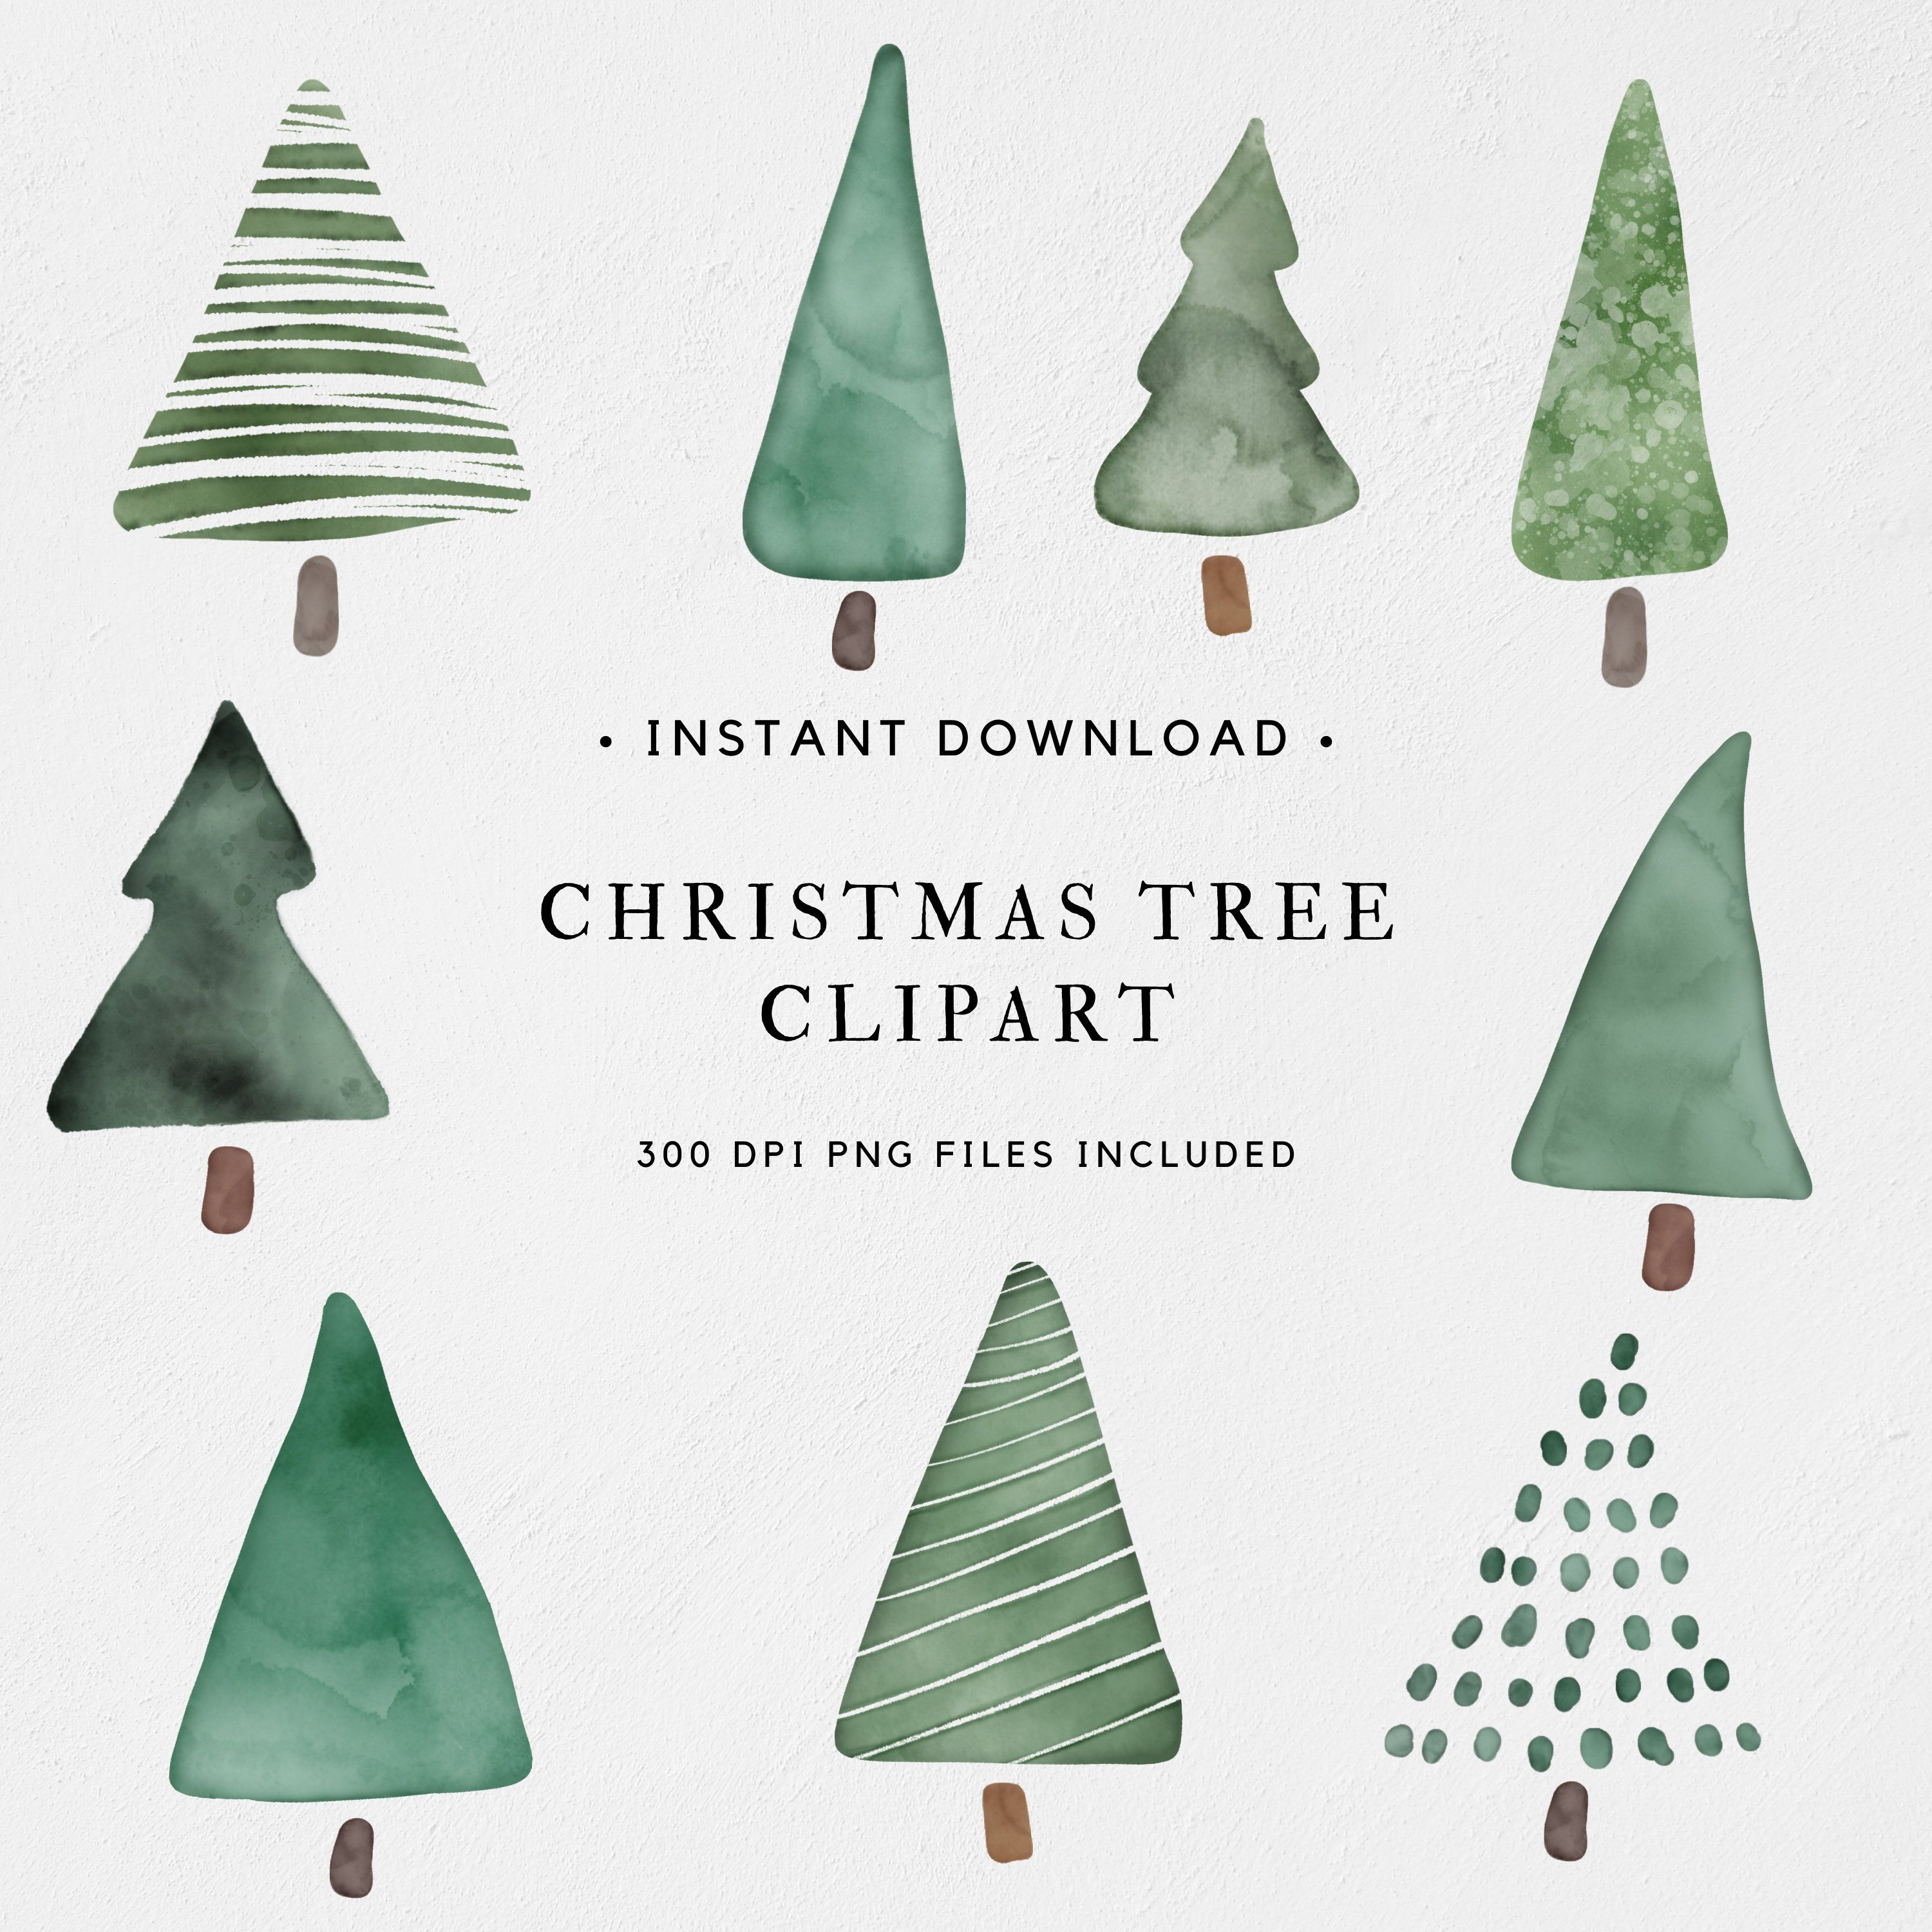 Abstract Watercolor Pine Tree Clipart Png Commercial Use Etsy Christmas Tree Clipart Watercolor Christmas Tree Christmas Tree Drawing